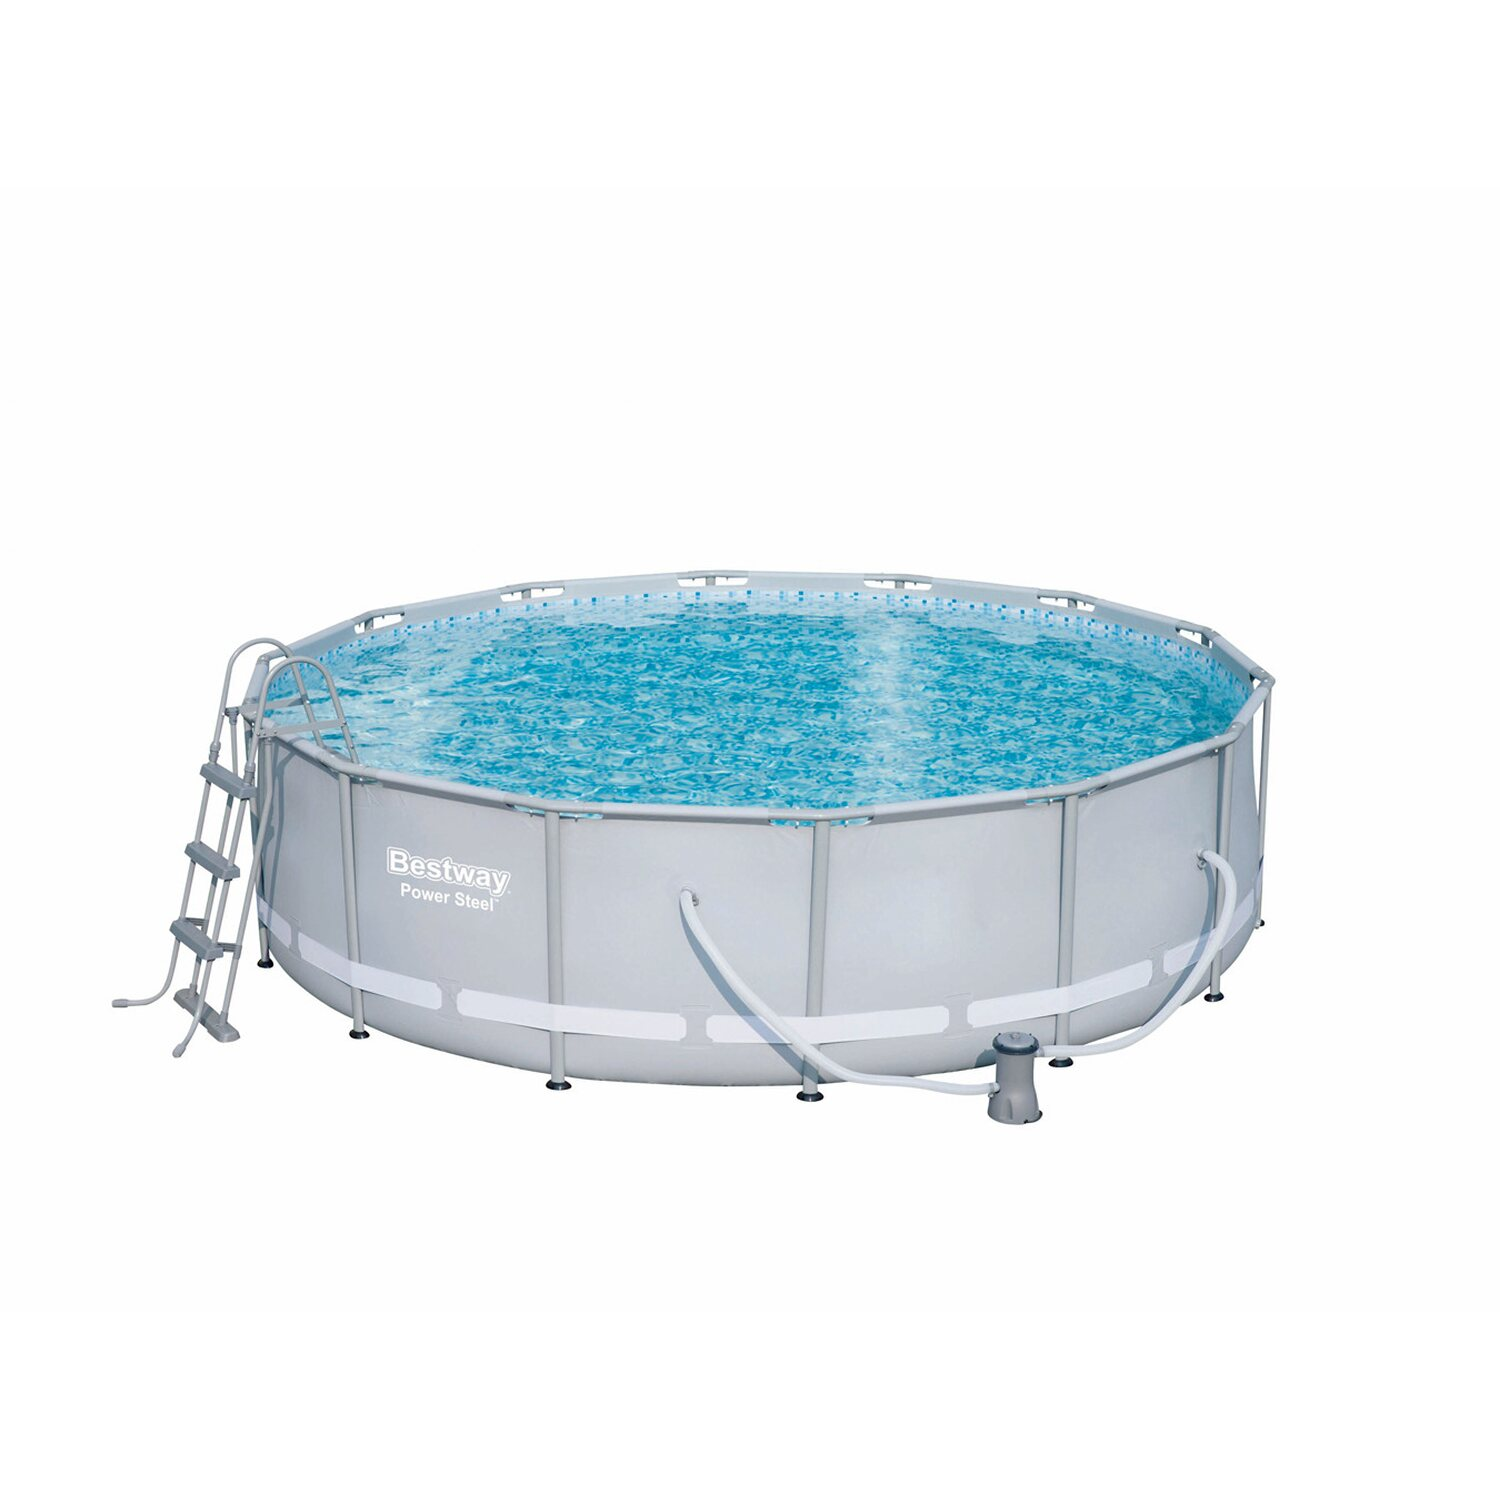 Bestway steel pro frame pool set 427 cm x 107 cm for Bestway pool bei obi